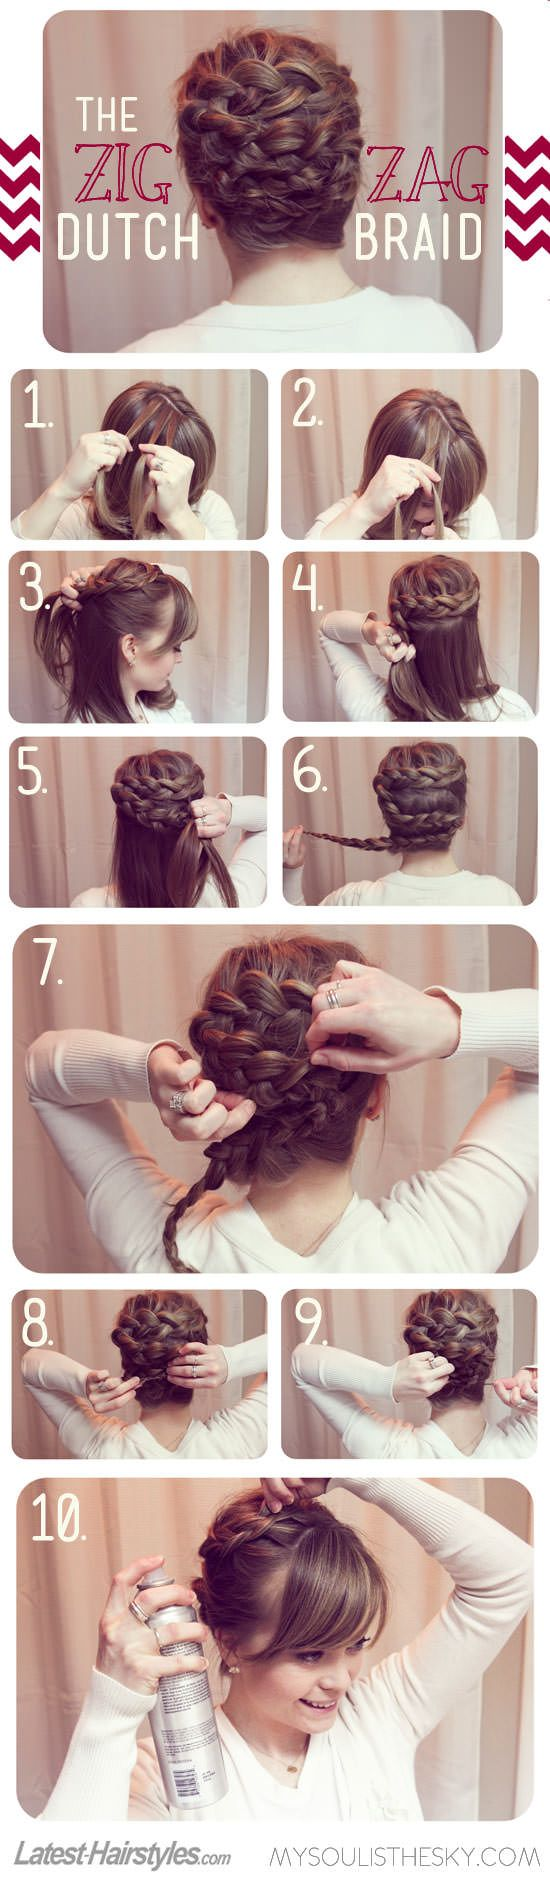 Add some zest to your hair with a zigzag dutch braid hair